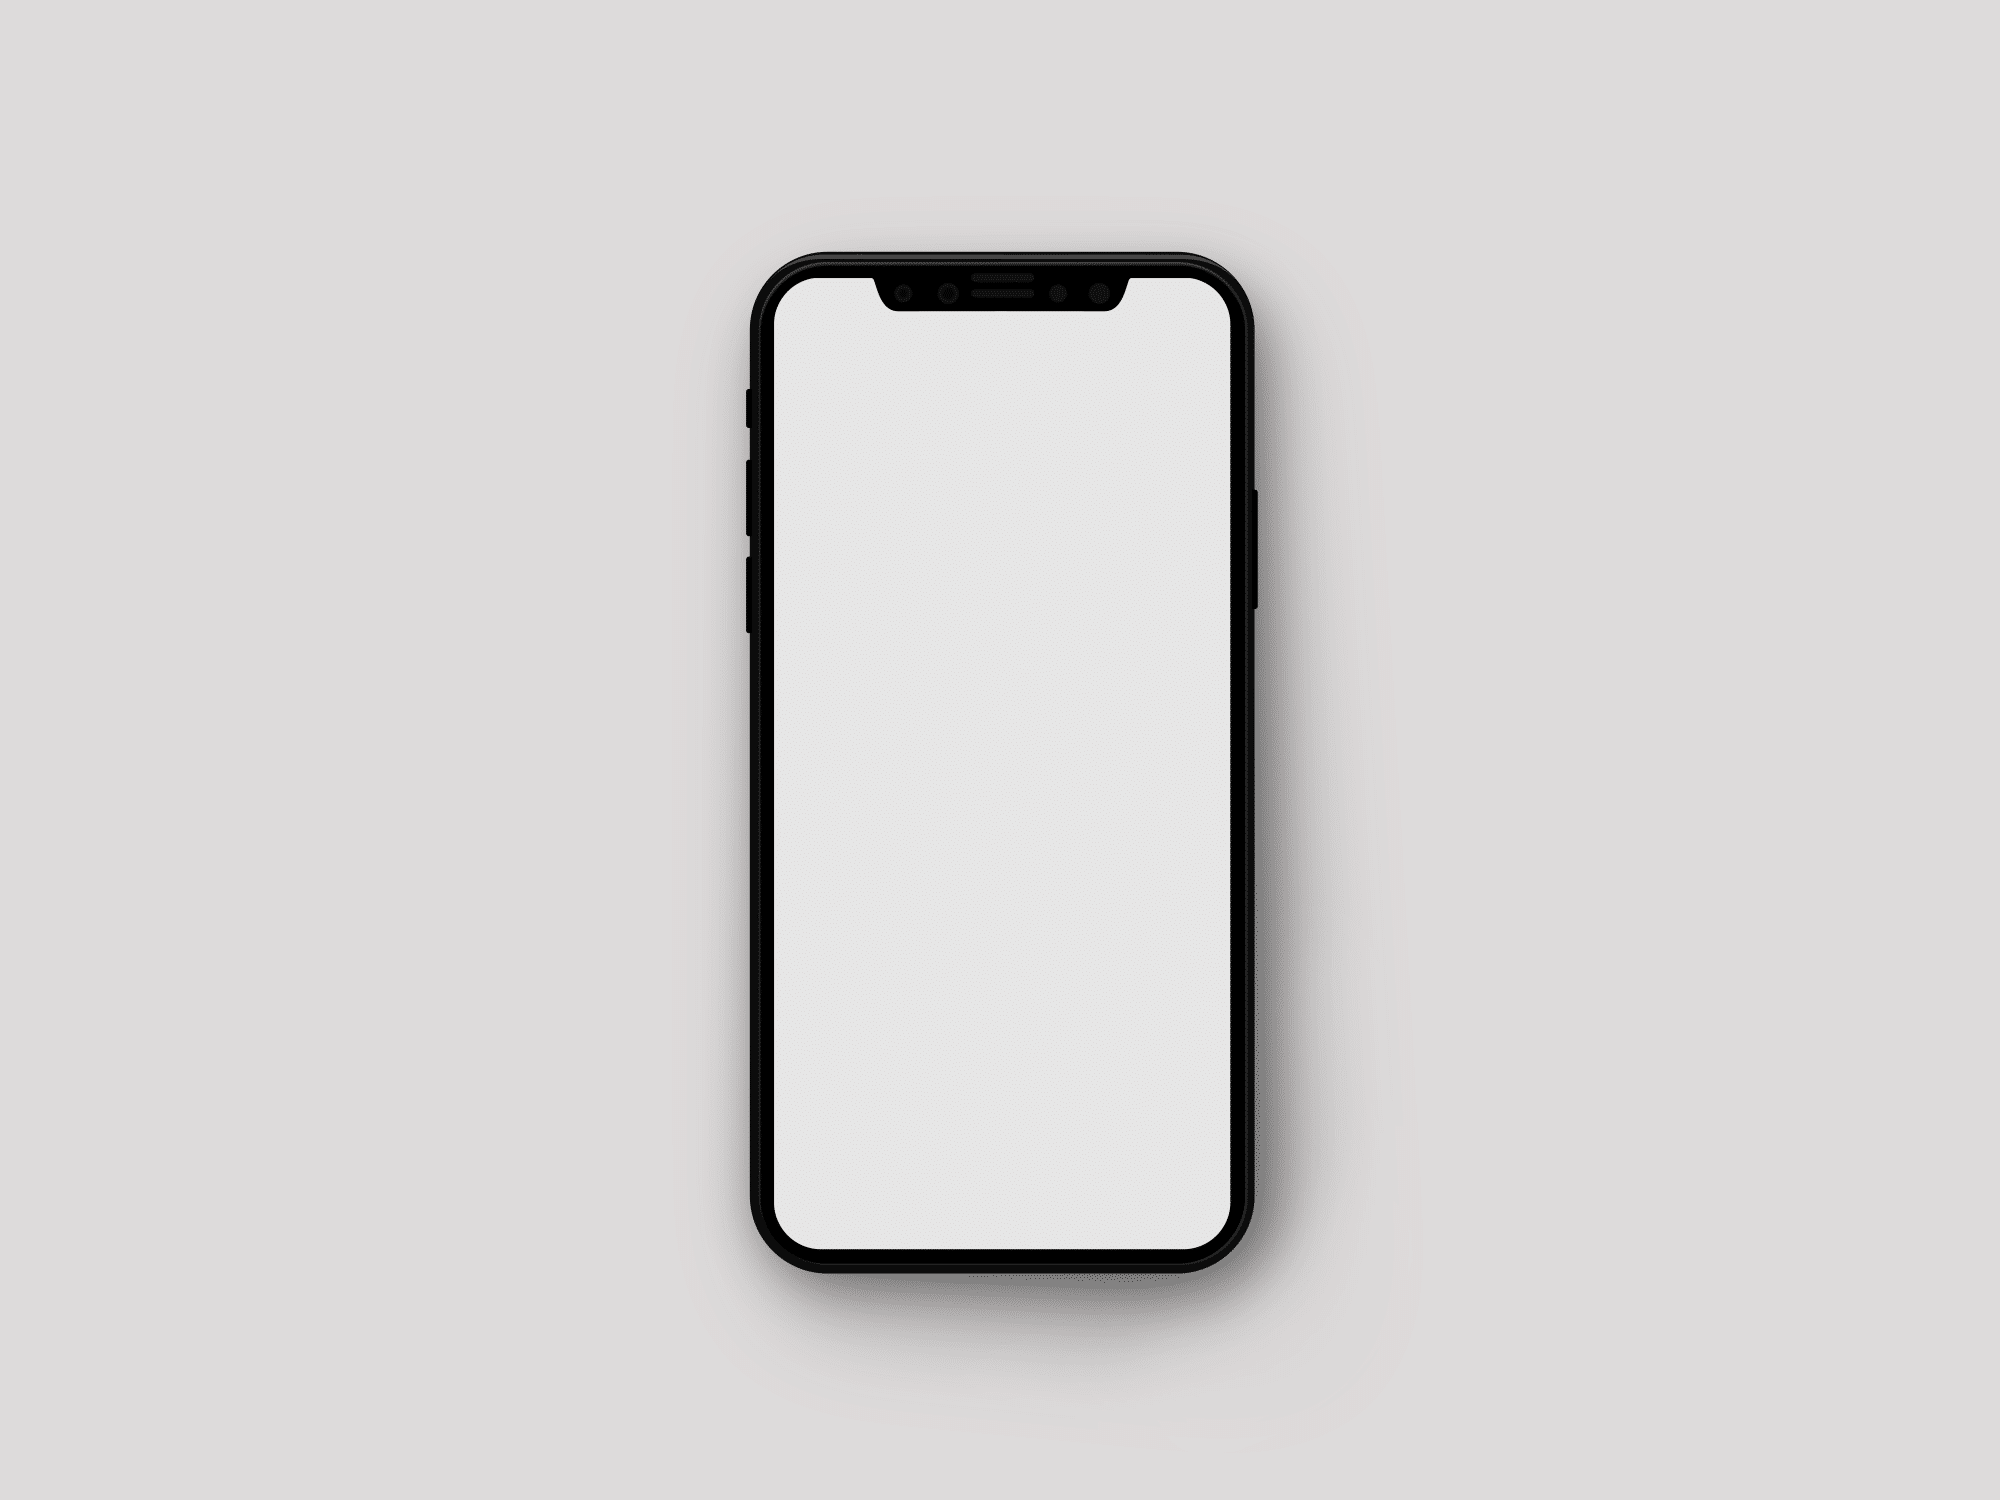 Minimalistic iPhone X Mockup | The Mockup Club